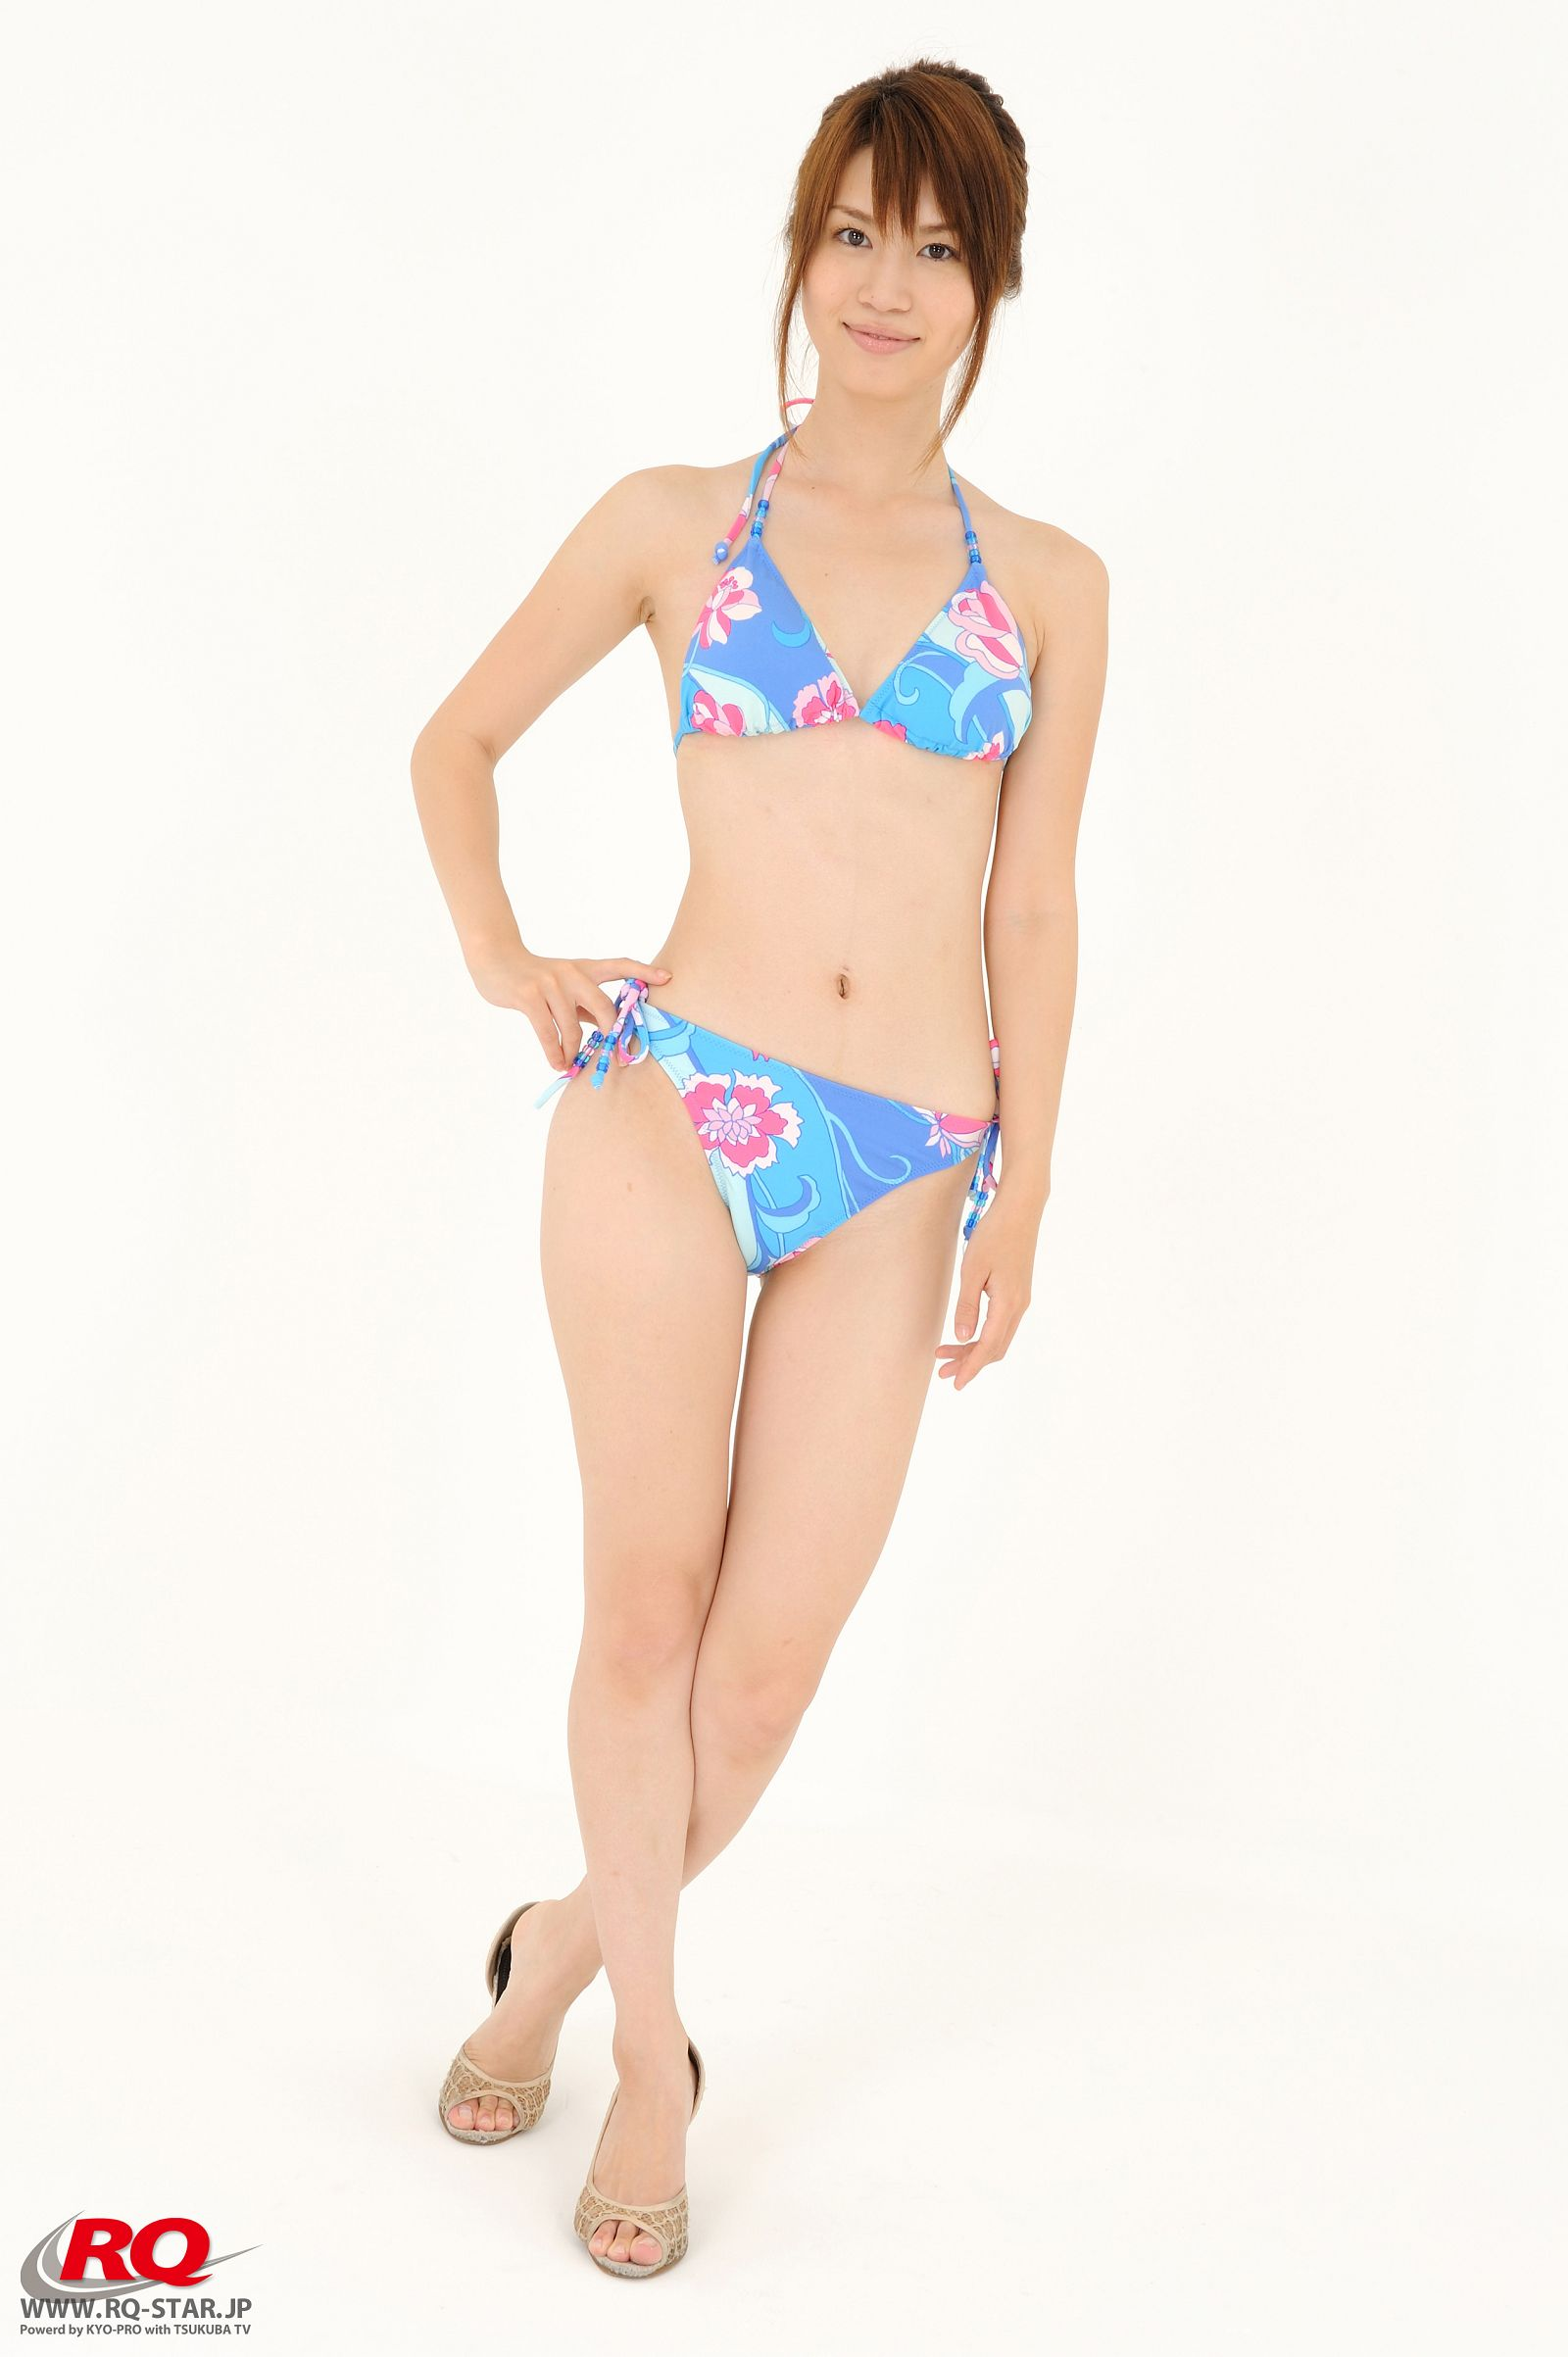 [RQ STAR美女] NO.0042 Aki Kogure 苤贍丐五 Swim Suits Blue[56P] RQ STAR 第1张